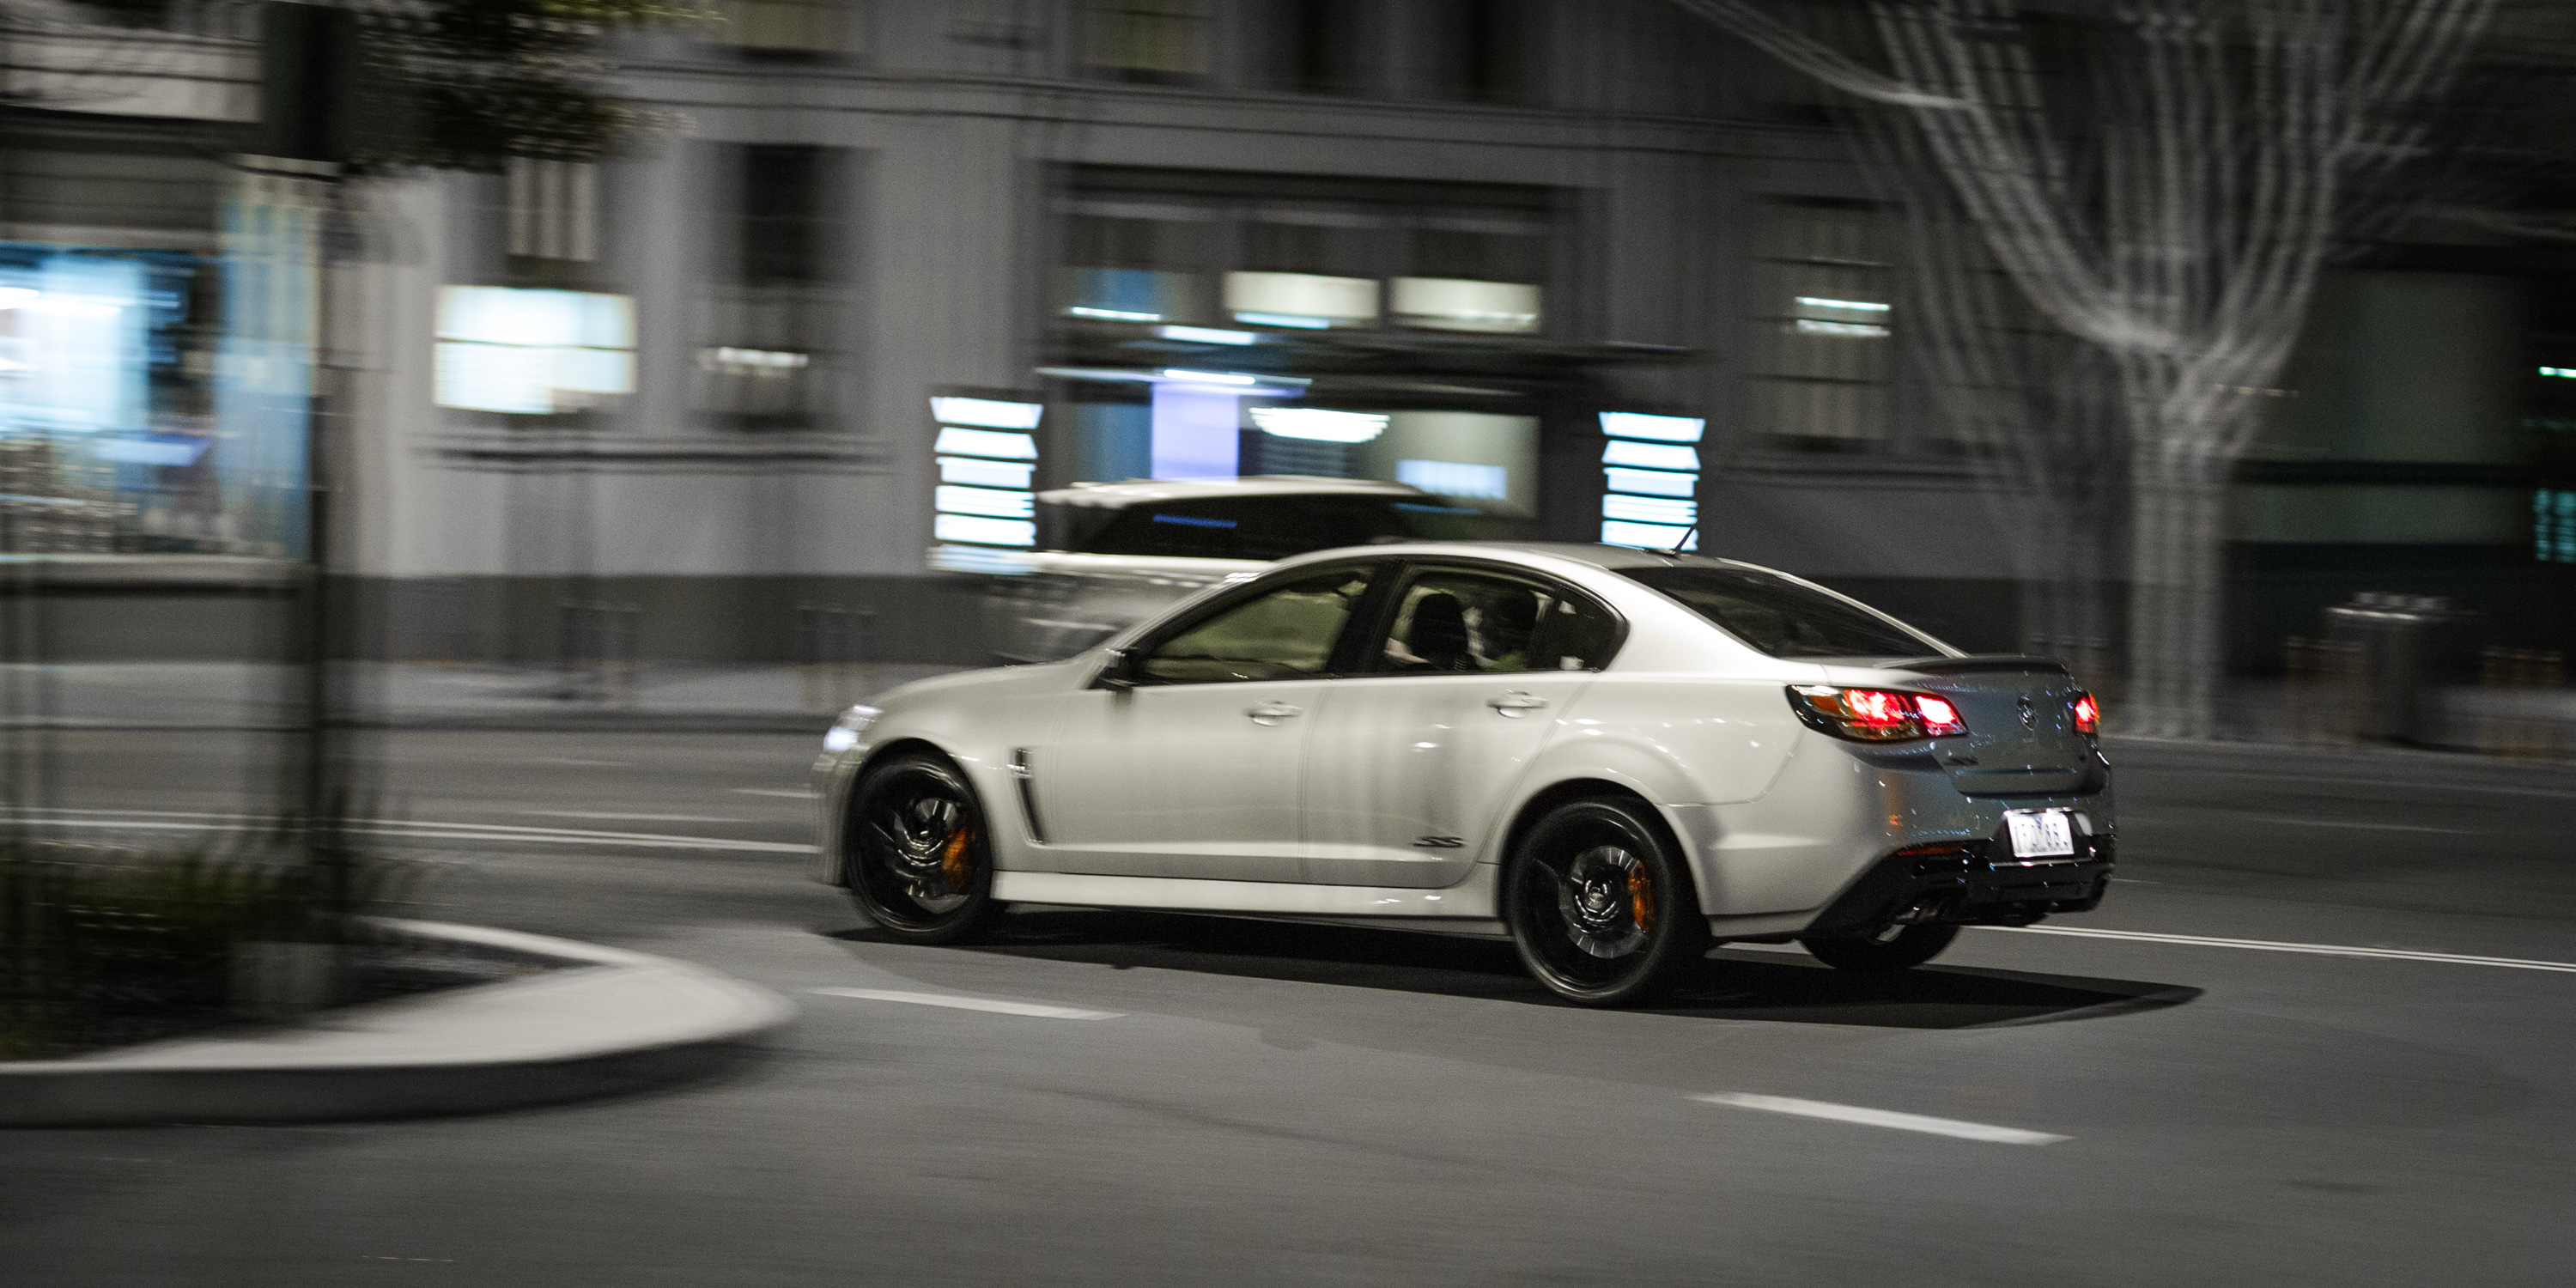 2016 Holden Commodore SS-V Redline review: Driving the city at night